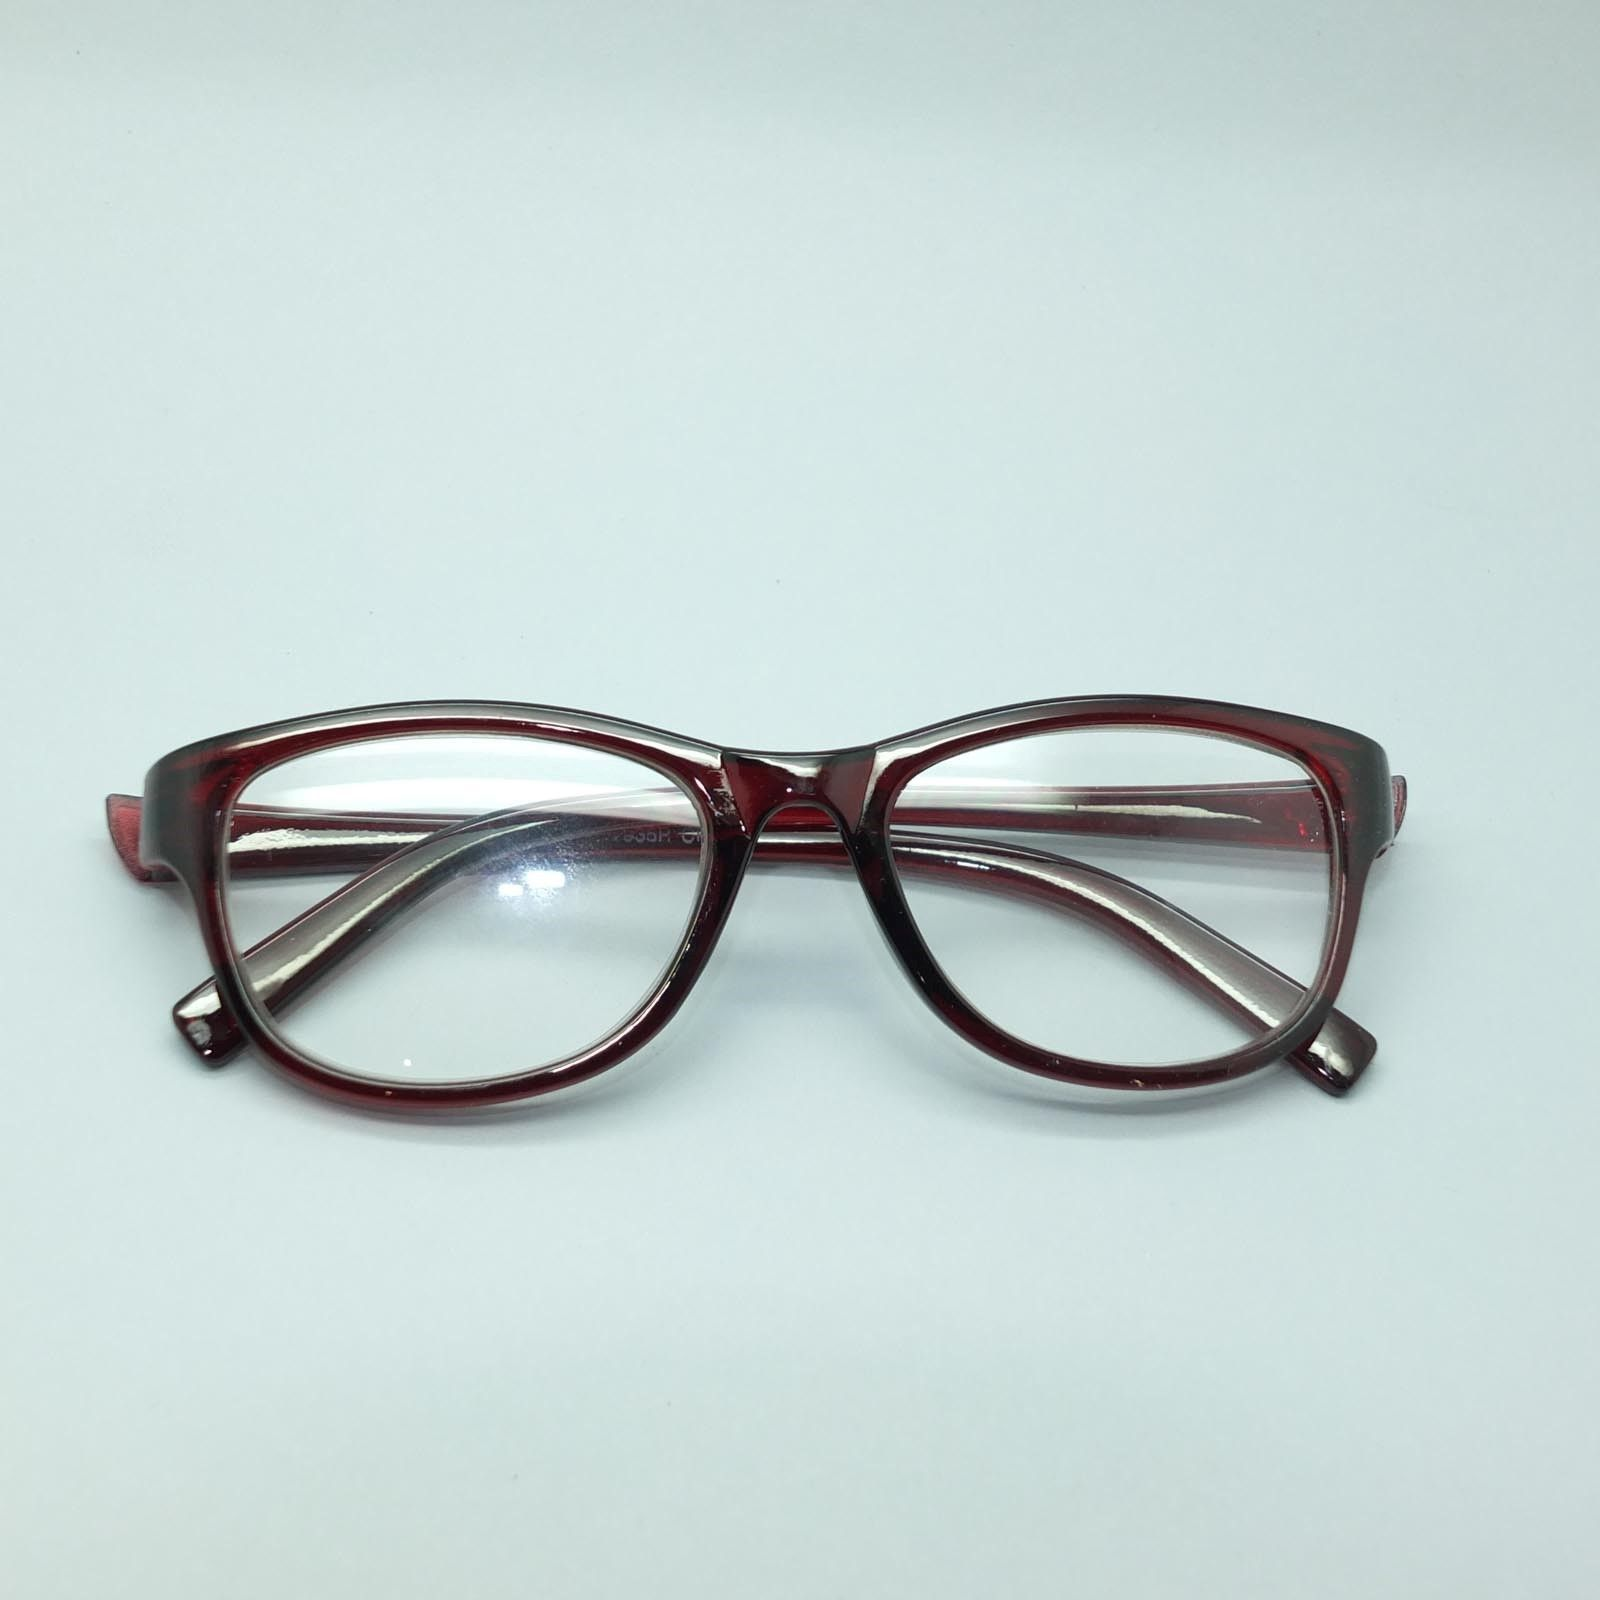 Reading Glasses Traditional Retro Office Frame Burgundy Red Brown +1.50 Lens